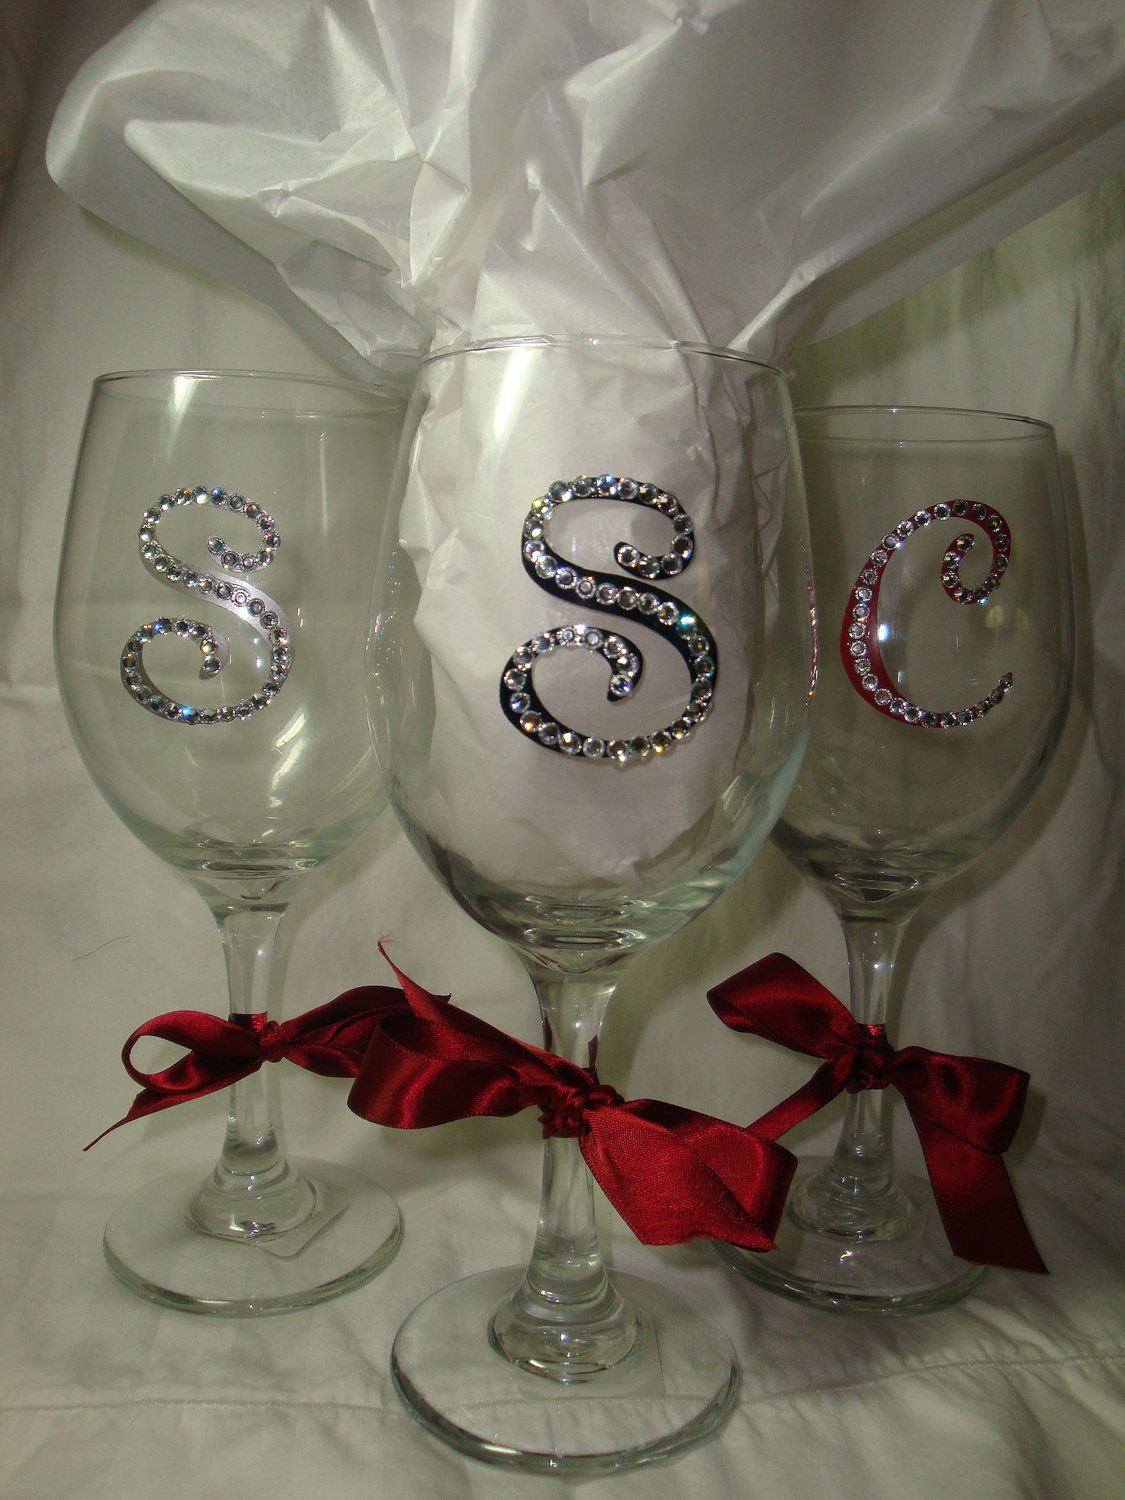 4 x Name /& Initial Vinyl Stickers for Glitter wine Glass Flute or Mason jars.